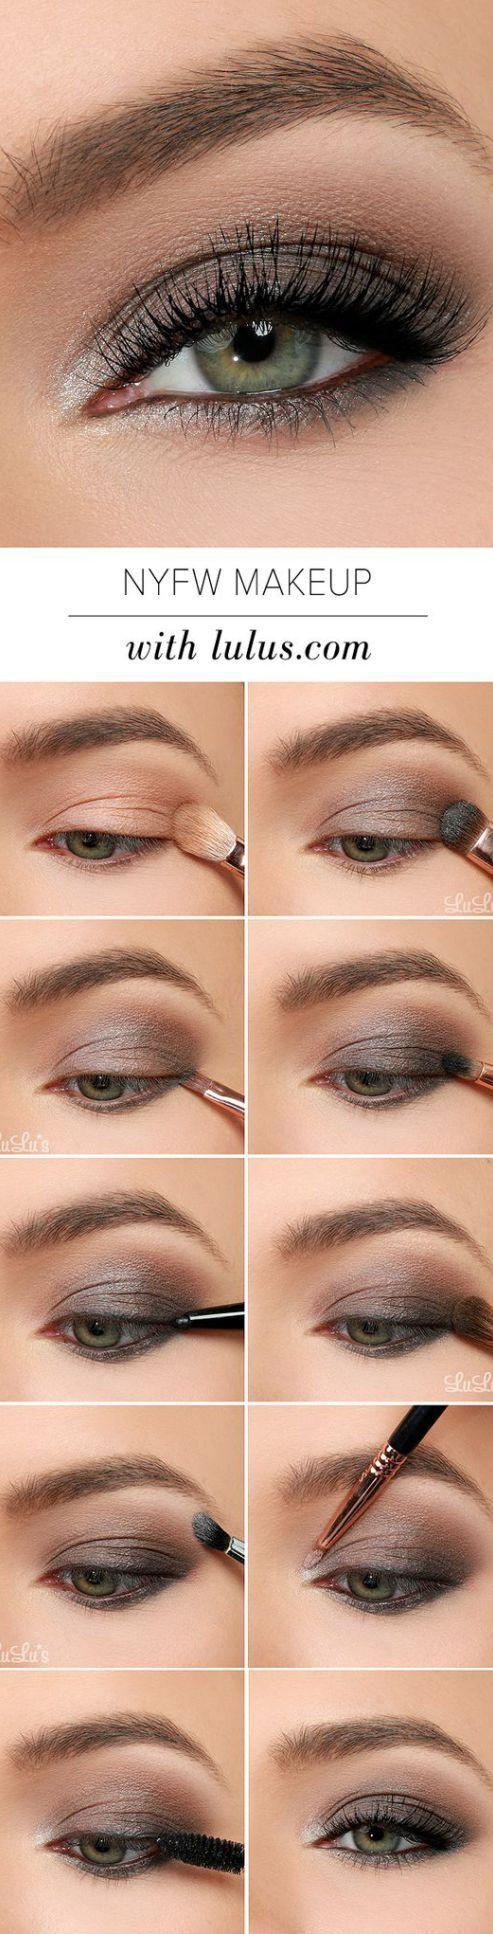 Wedding - Gray Smokey Eye